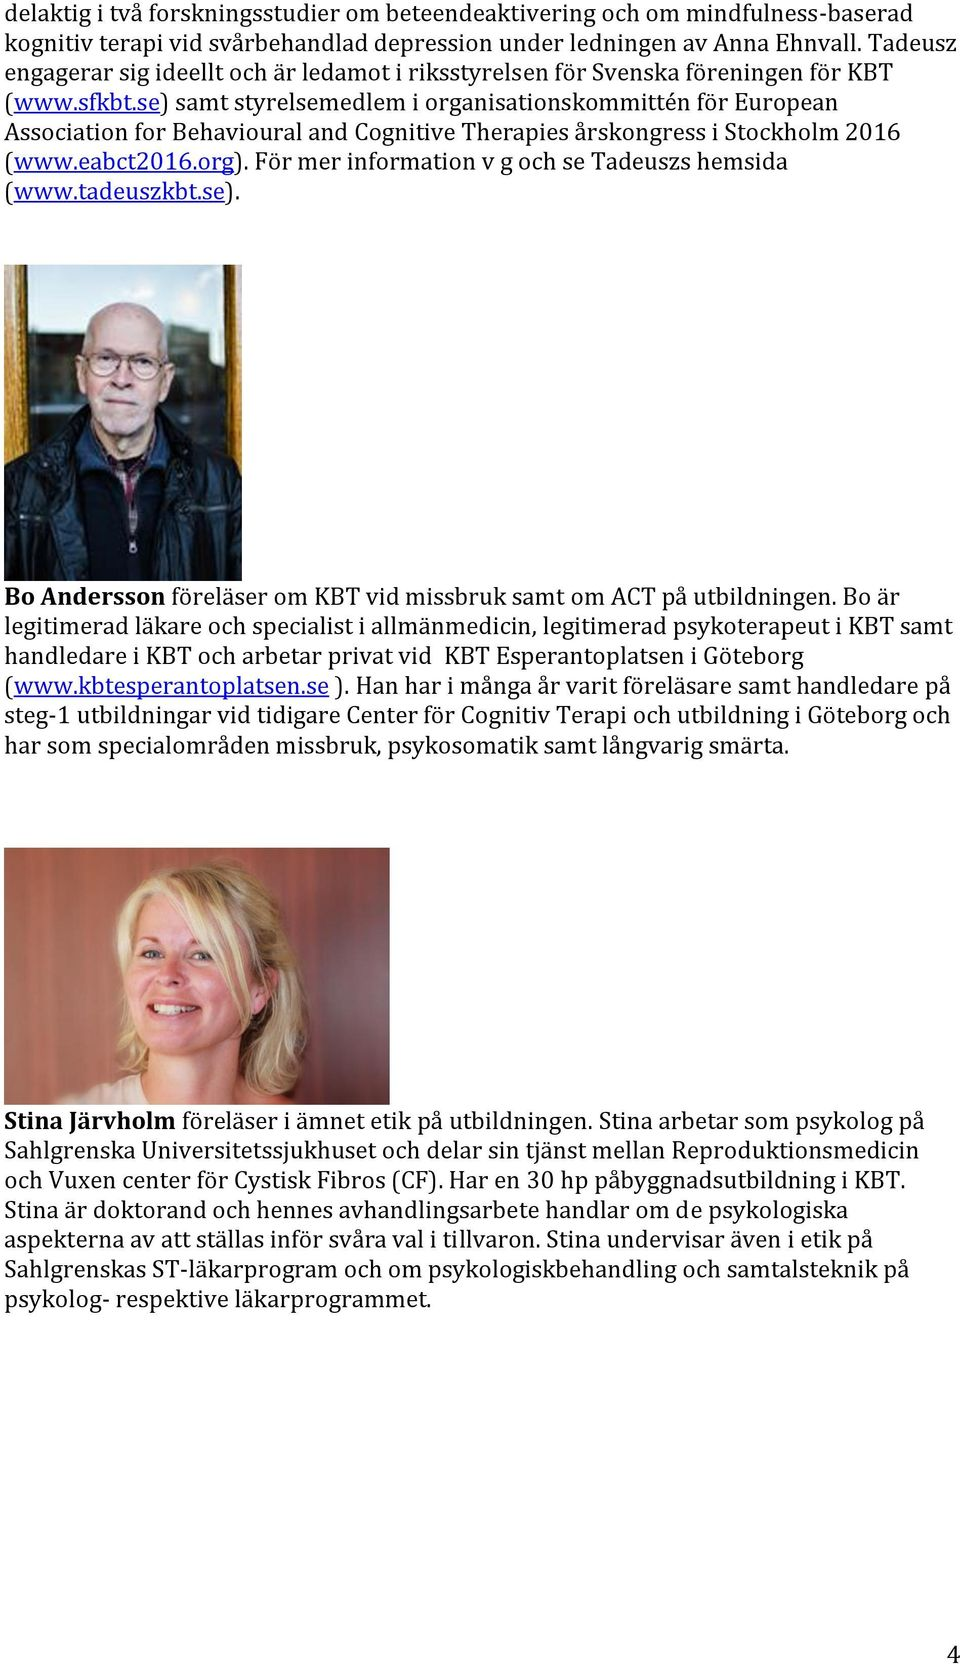 se) samt styrelsemedlem i organisationskommittén för European Association for Behavioural and Cognitive Therapies årskongress i Stockholm 2016 (www.eabct2016.org).